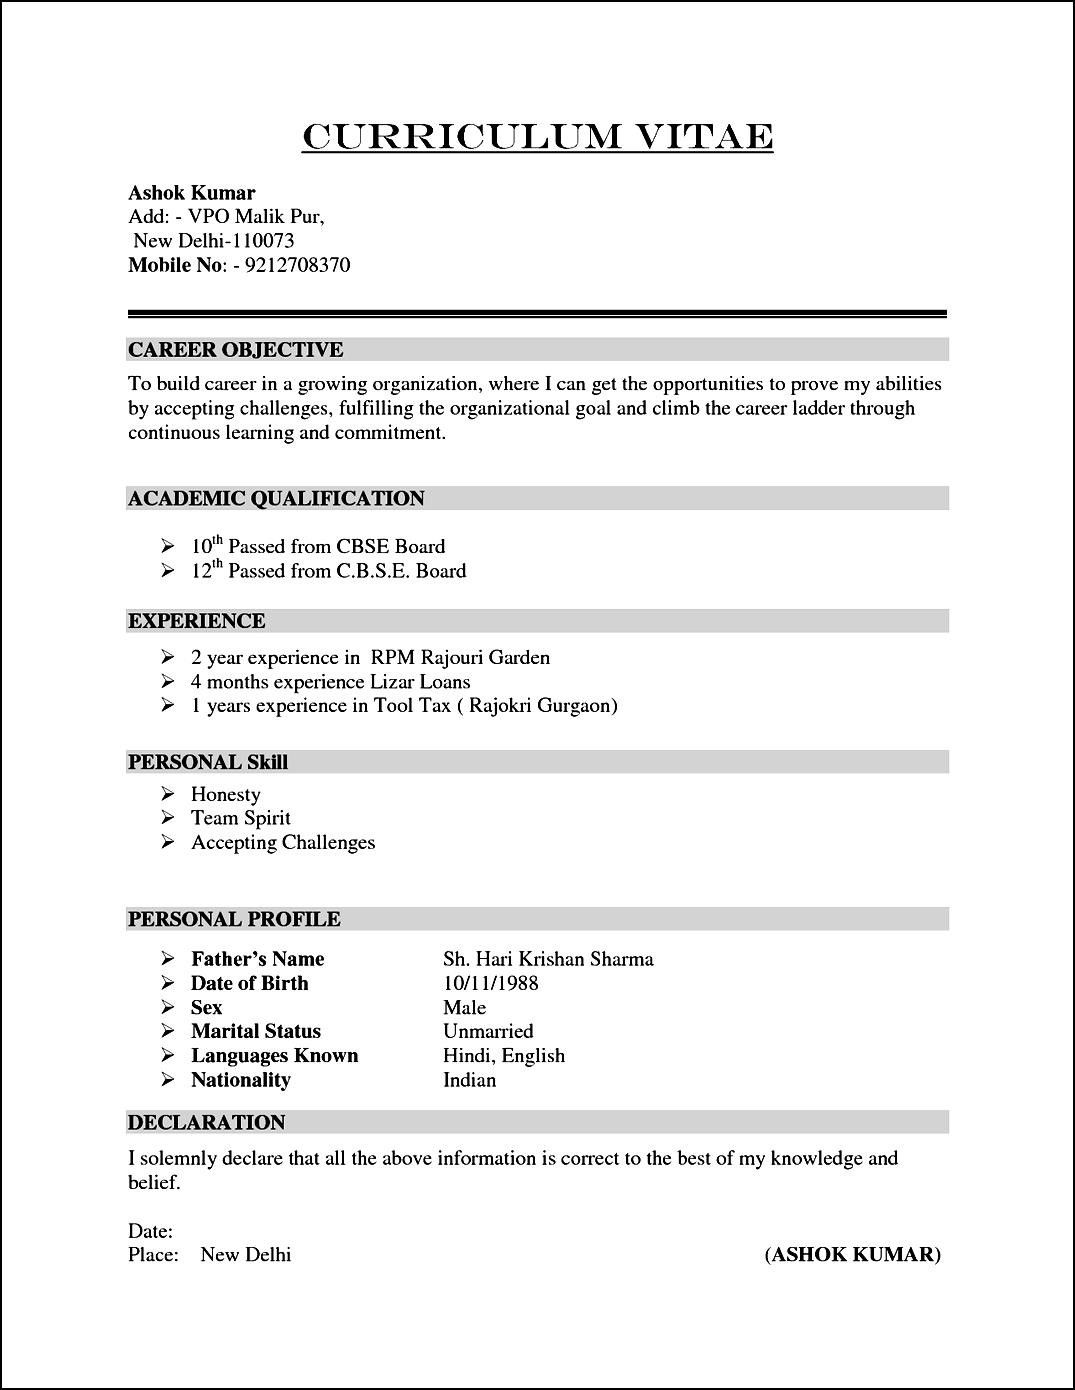 sample curriculum vitae resume for career objective with academic qualification and experience in rpm rajouri garden or personal skills